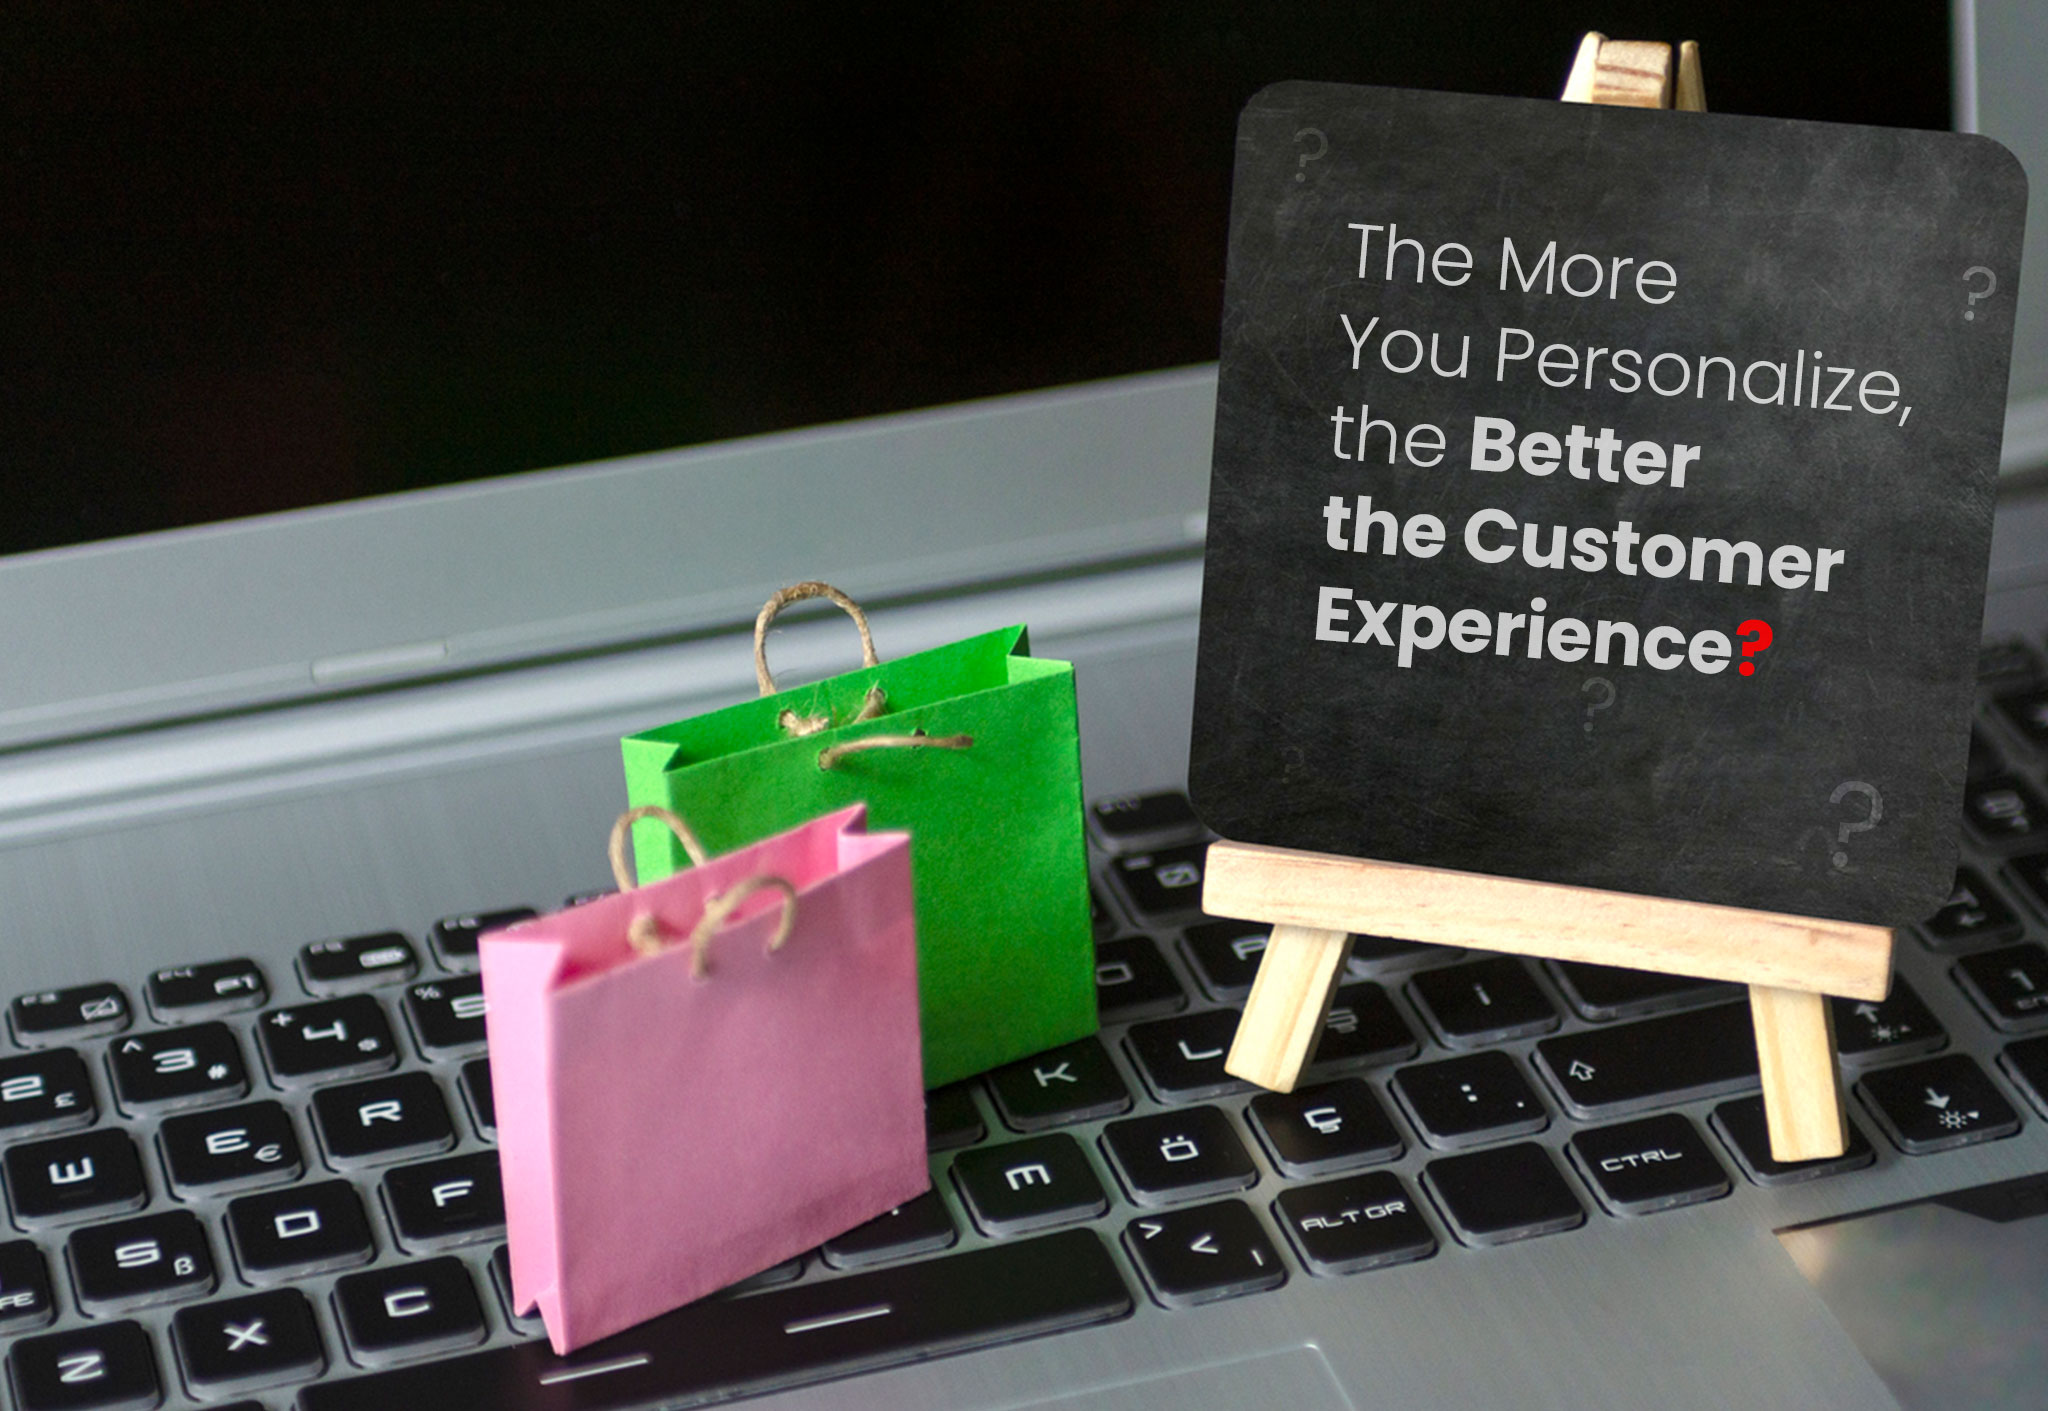 The More You Personalize, the Better the Customer Experience – True or False?